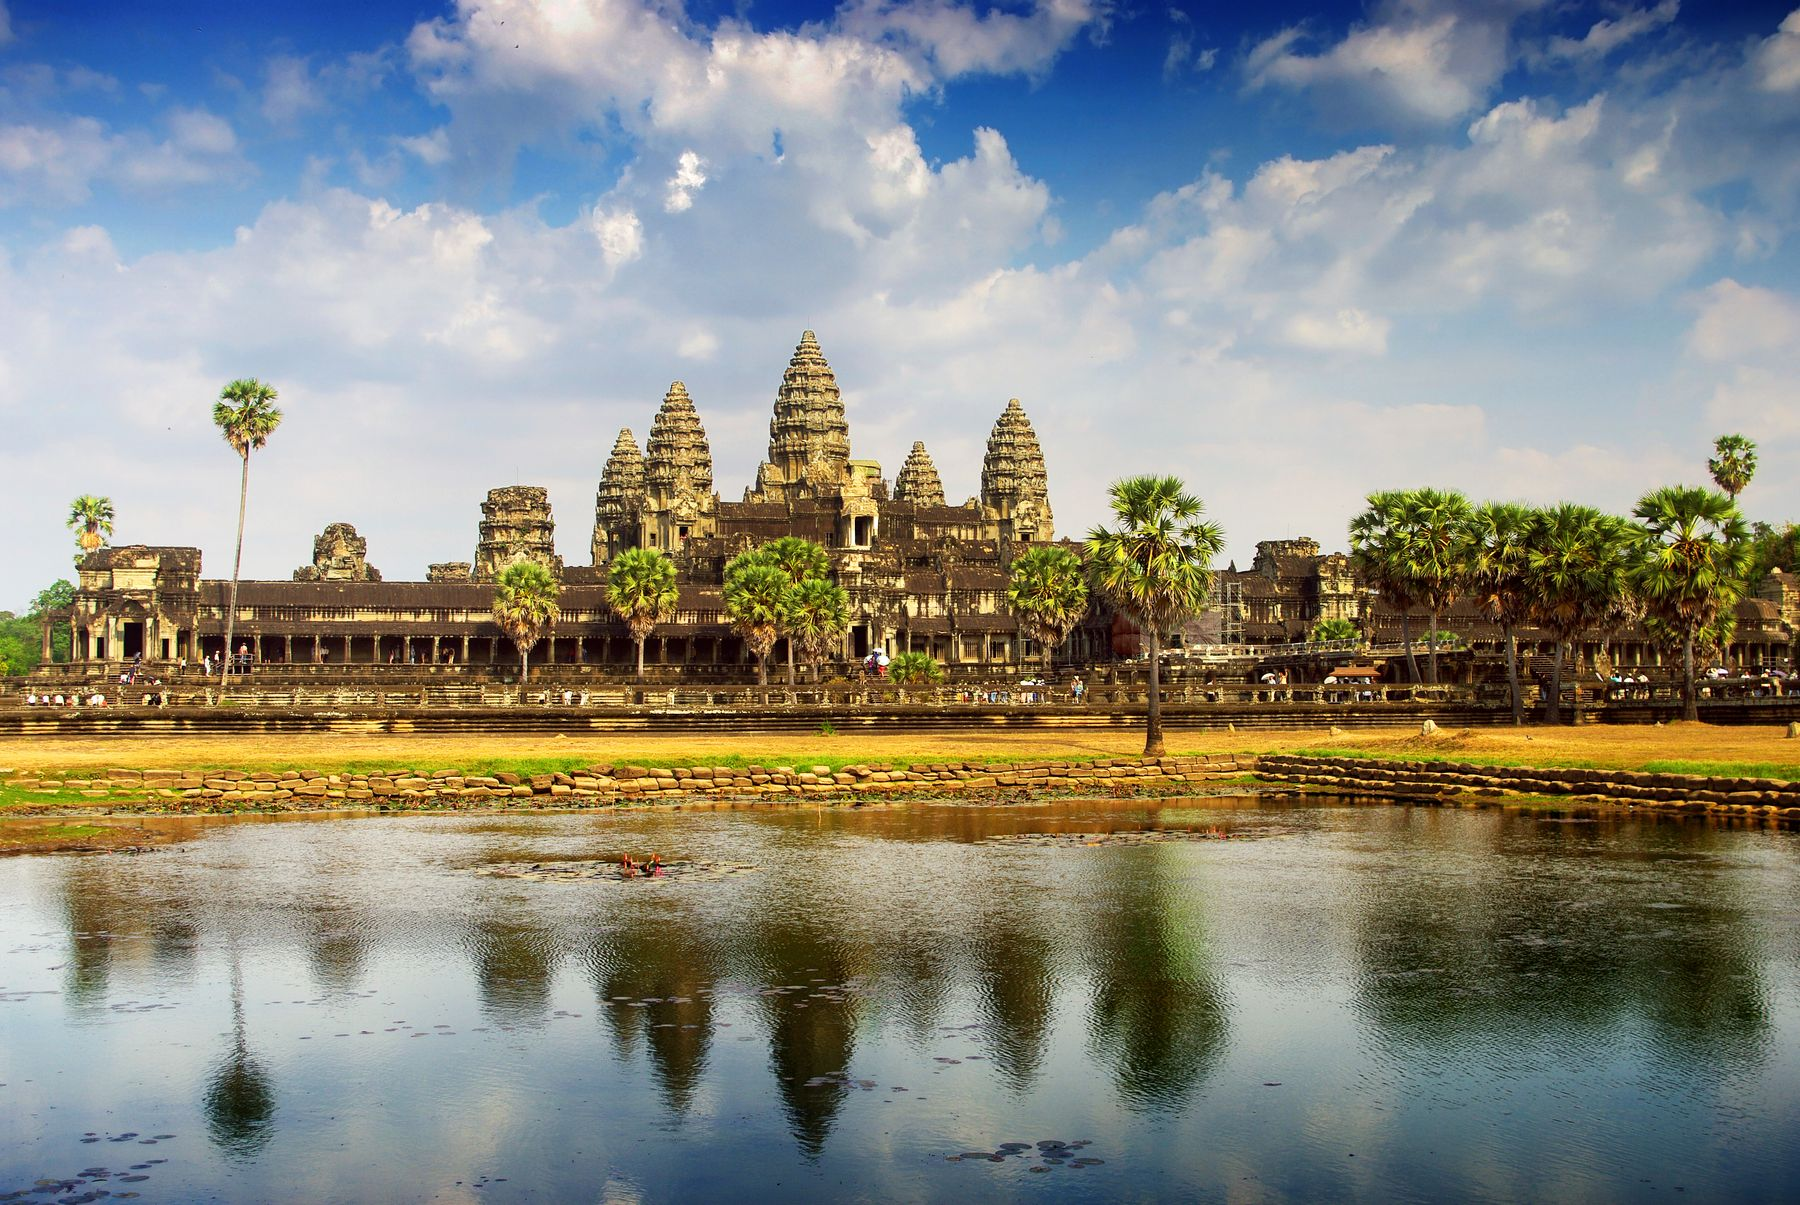 The Angkor Wat temple in Cambodia